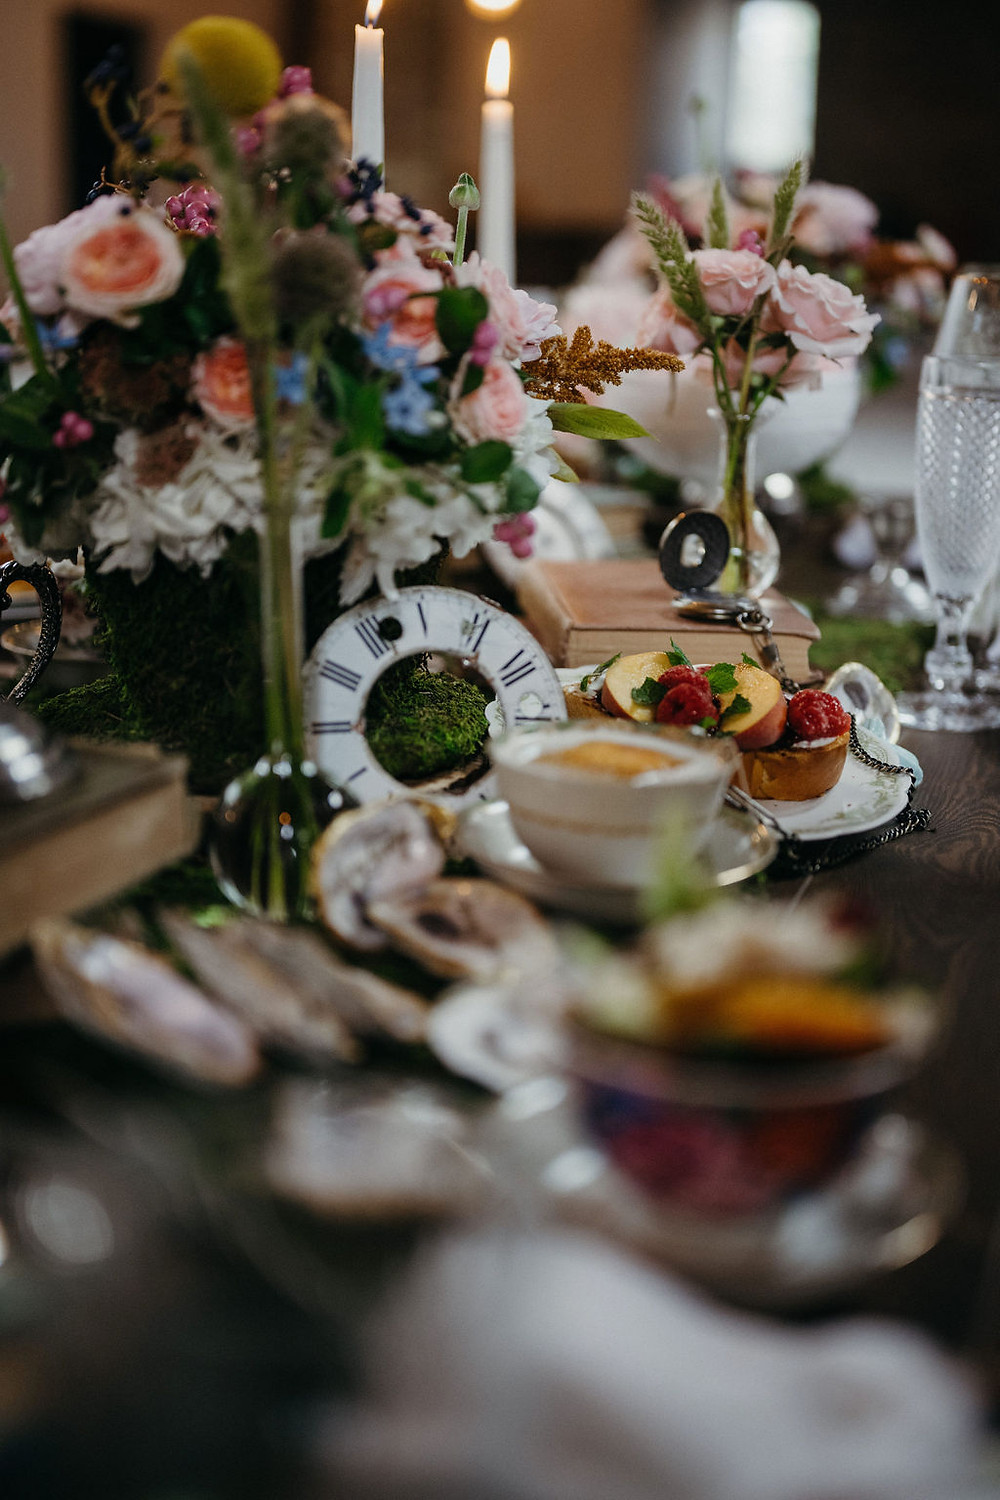 clock face, pocket watch, bud vases, moss, and teacups set the scene for styled tablescape